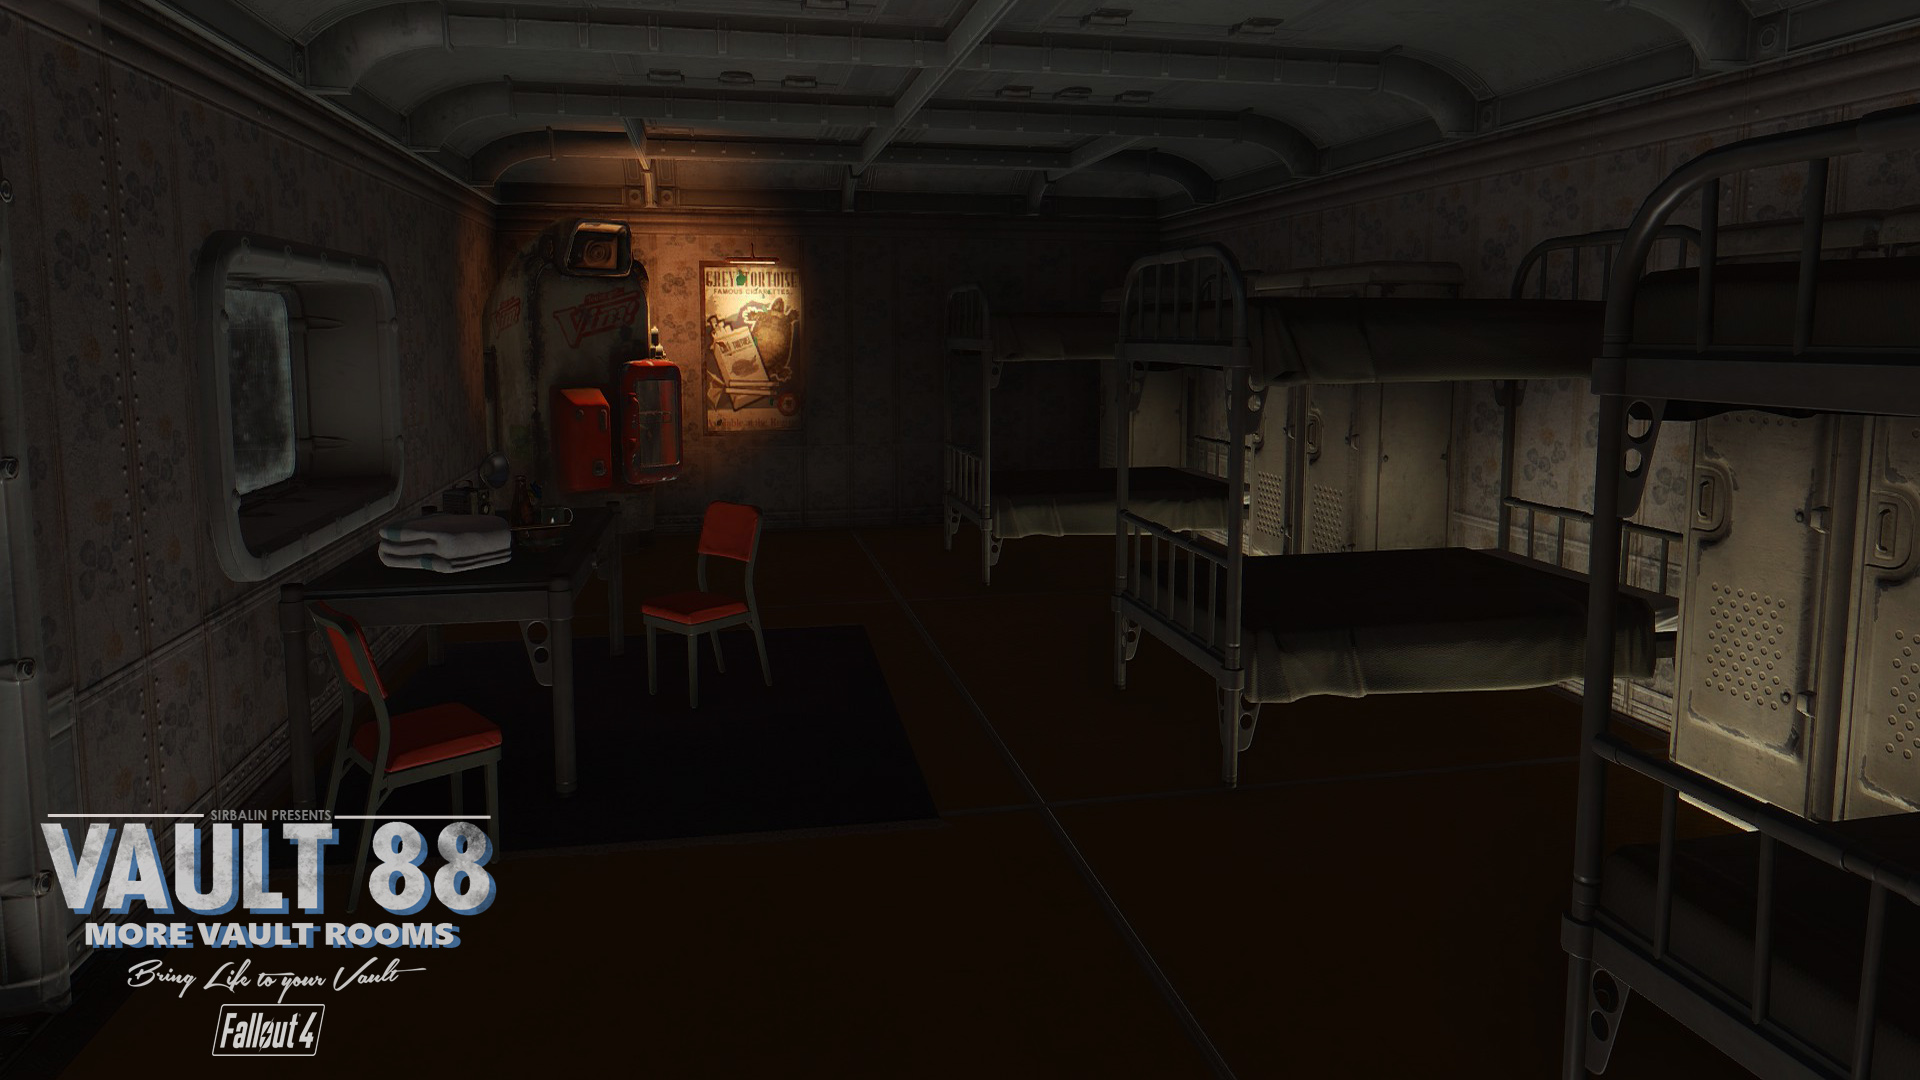 Vault 88 more vault rooms at fallout 4 nexus mods and for Fallout 4 bedroom ideas